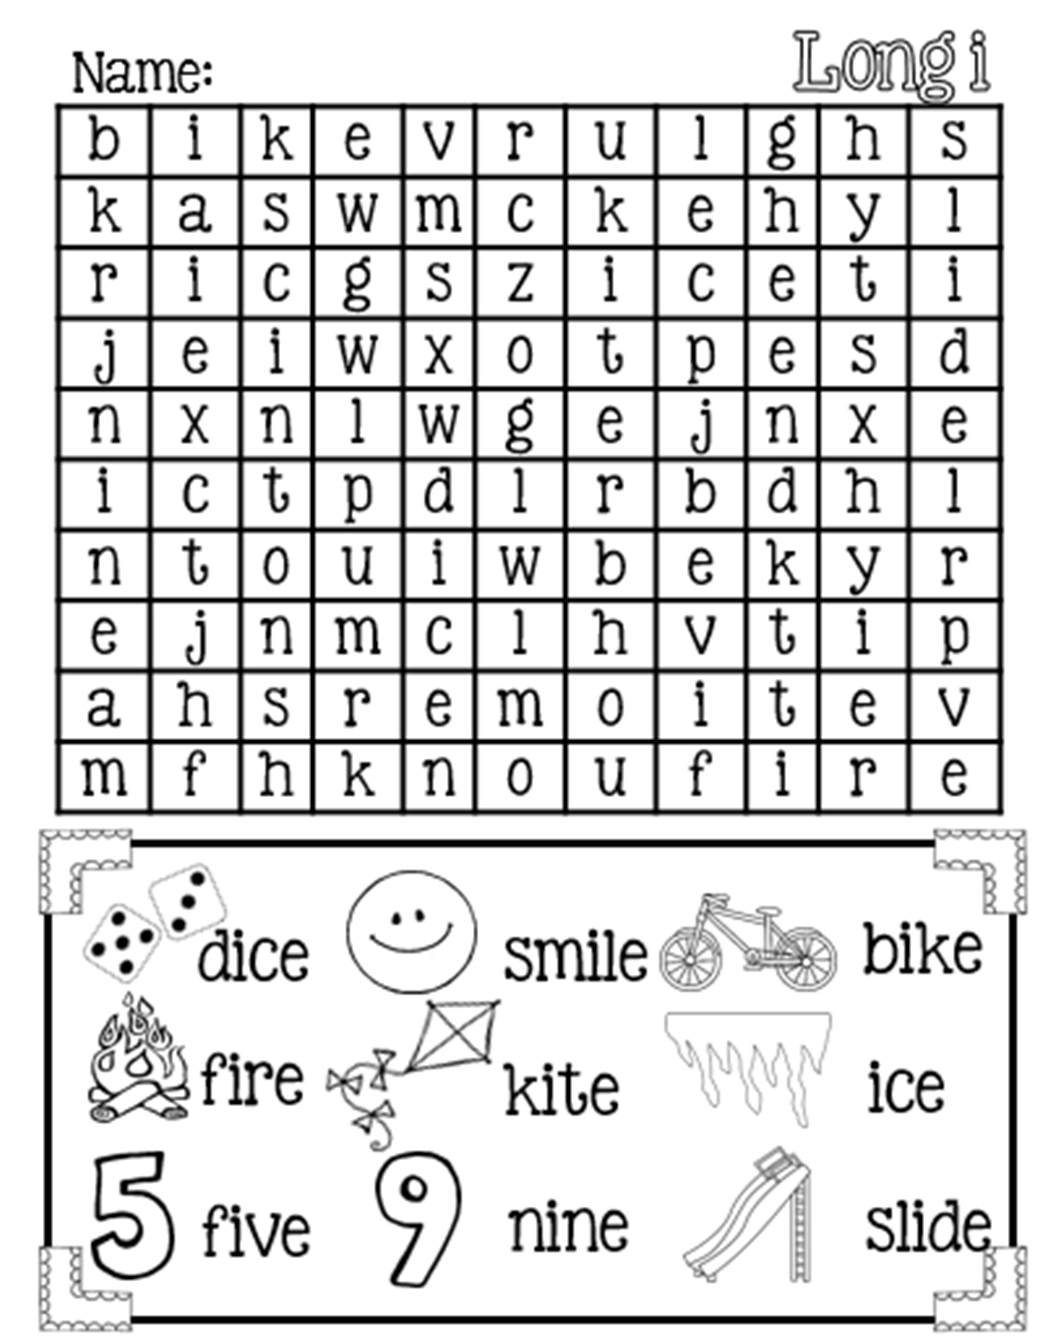 Magic E Long I Word Search {Free} | Elementary Classroom | Long I | Silent E Printable Worksheets